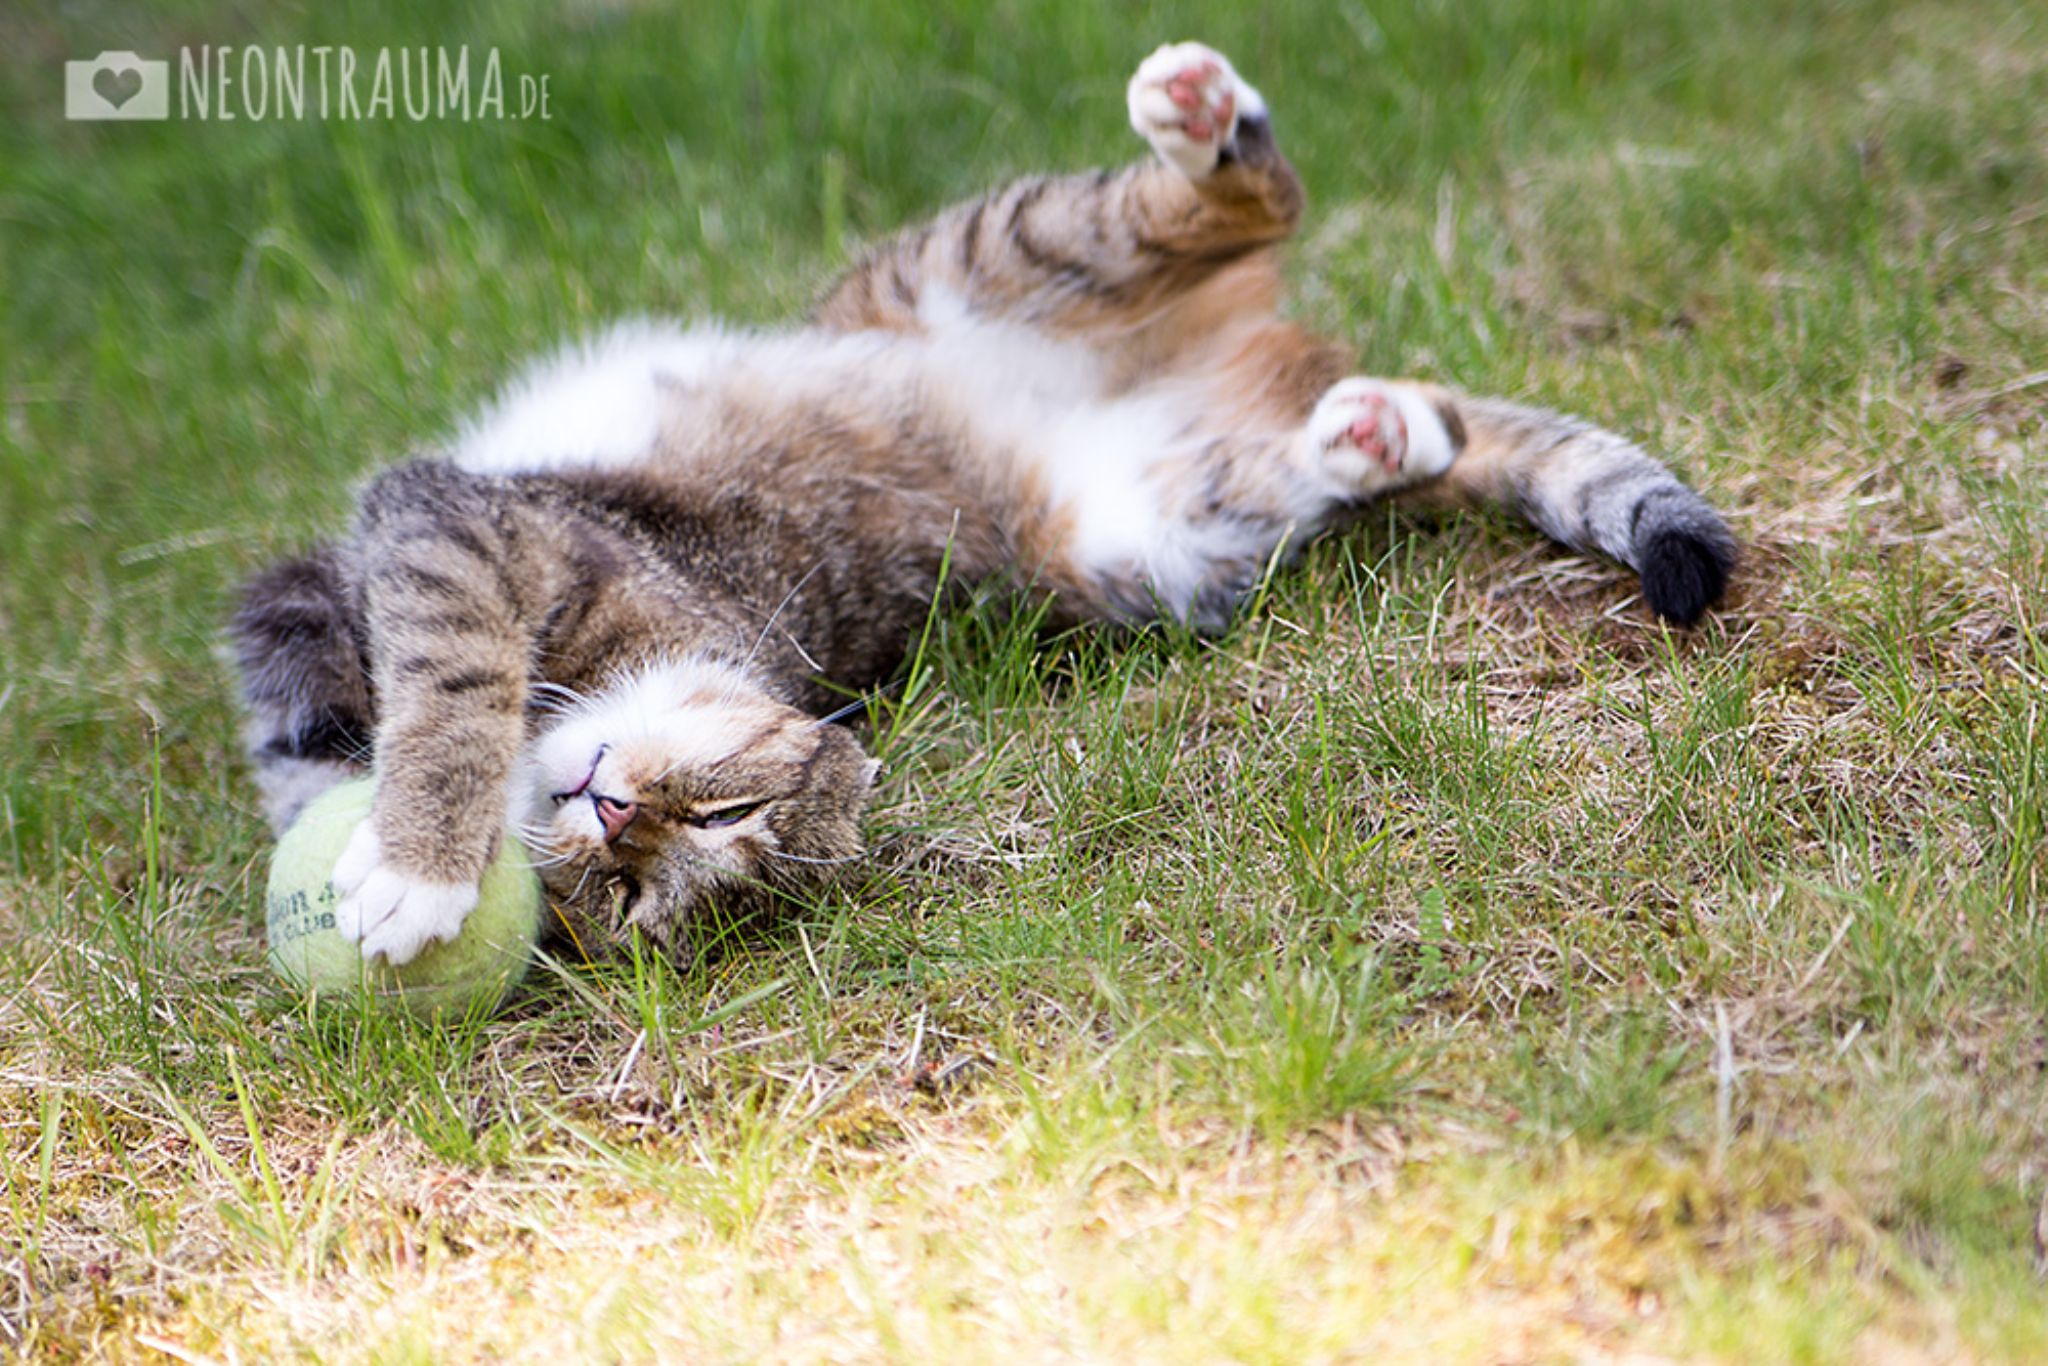 Our cat playing with the dog's tennis ball by neontrauma